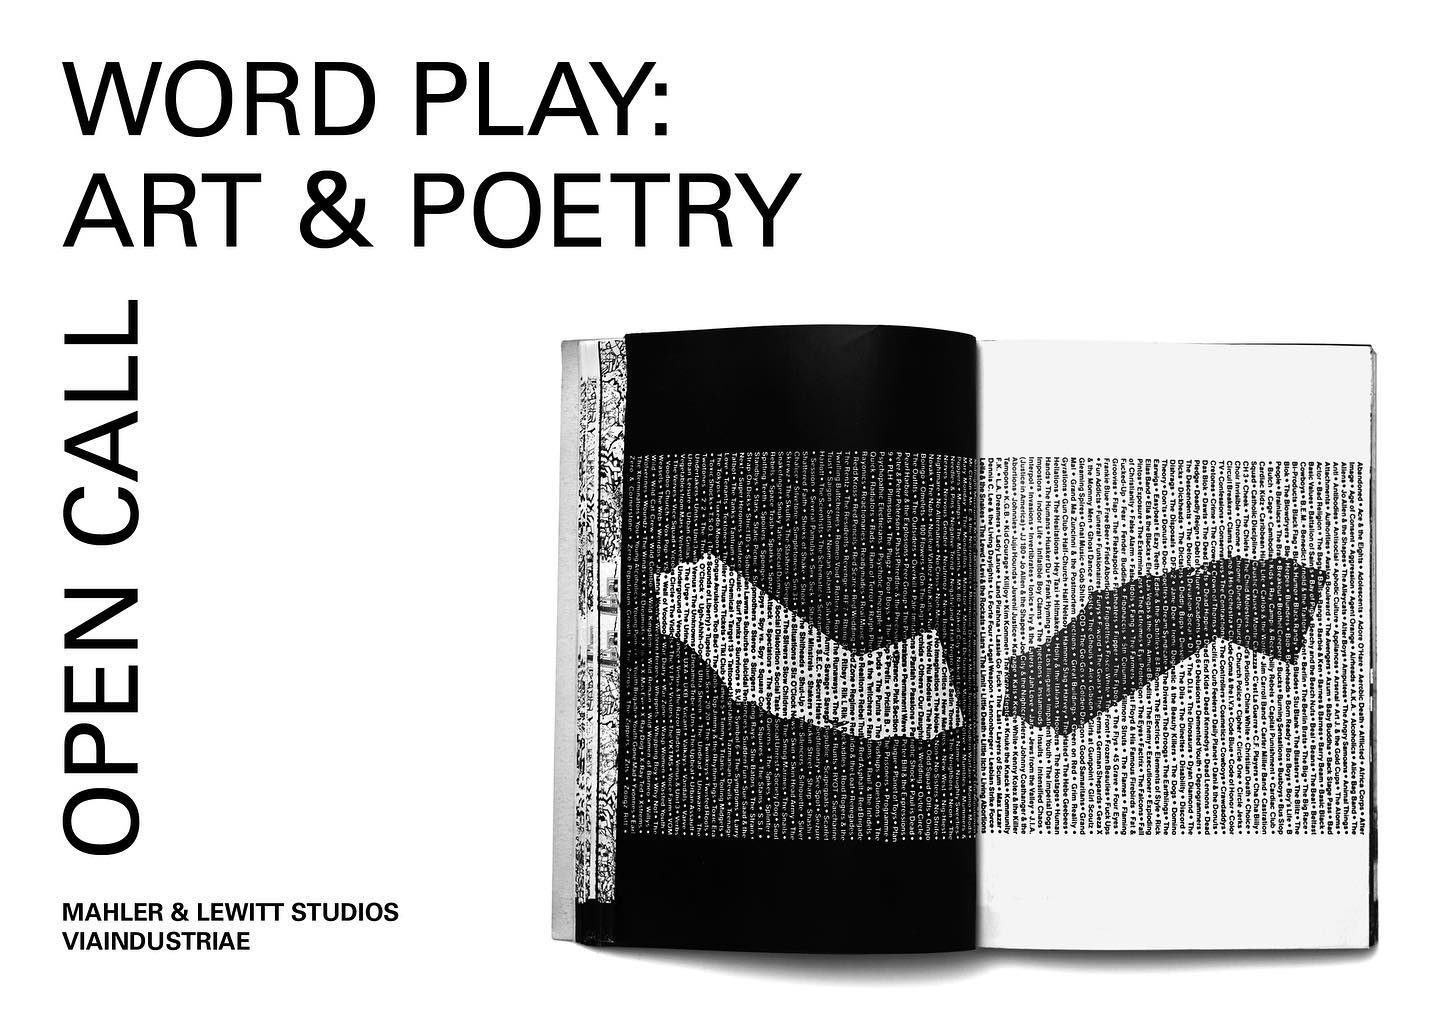 WORD PLAY: ART & POETRY